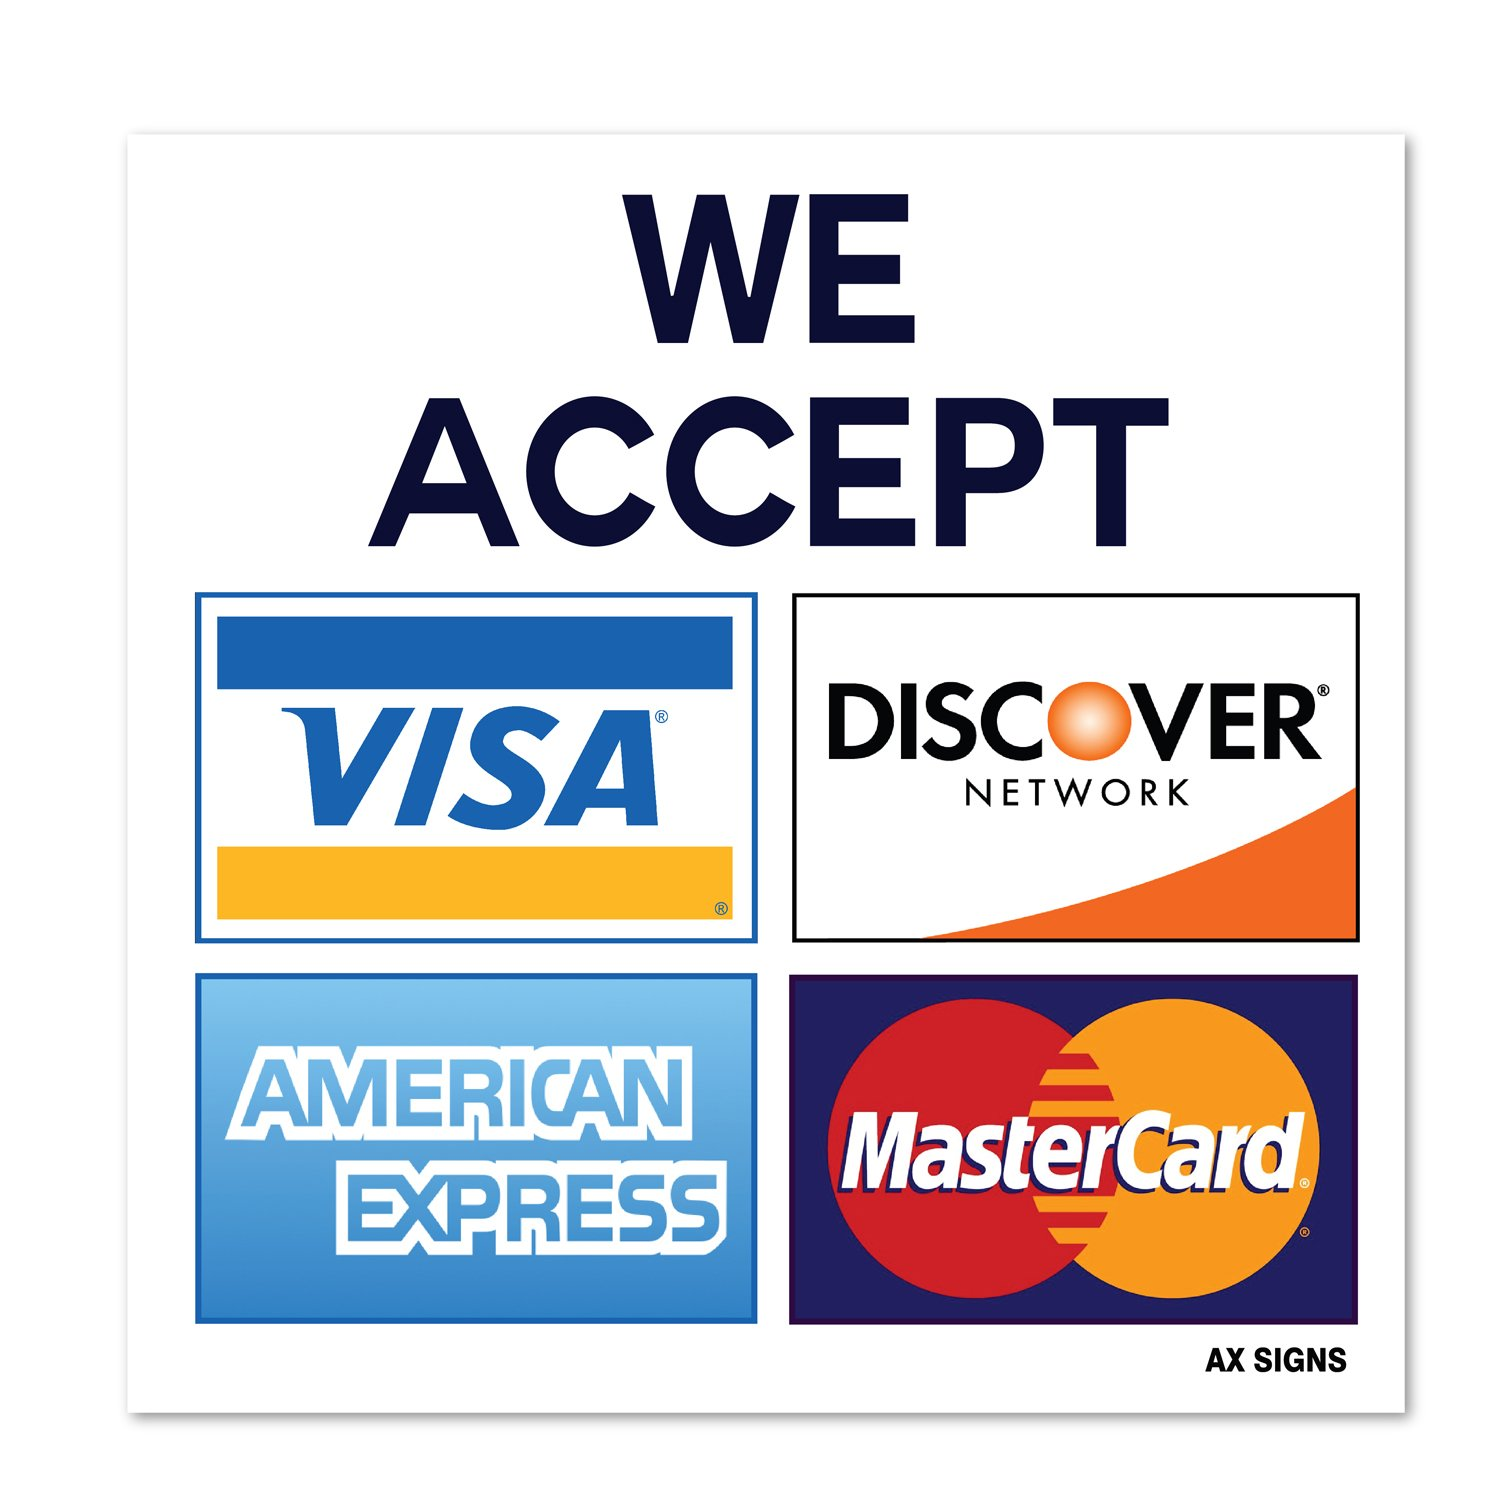 We Accept Visa MasterCard American Express AMEX Discover, 8,8 x 8